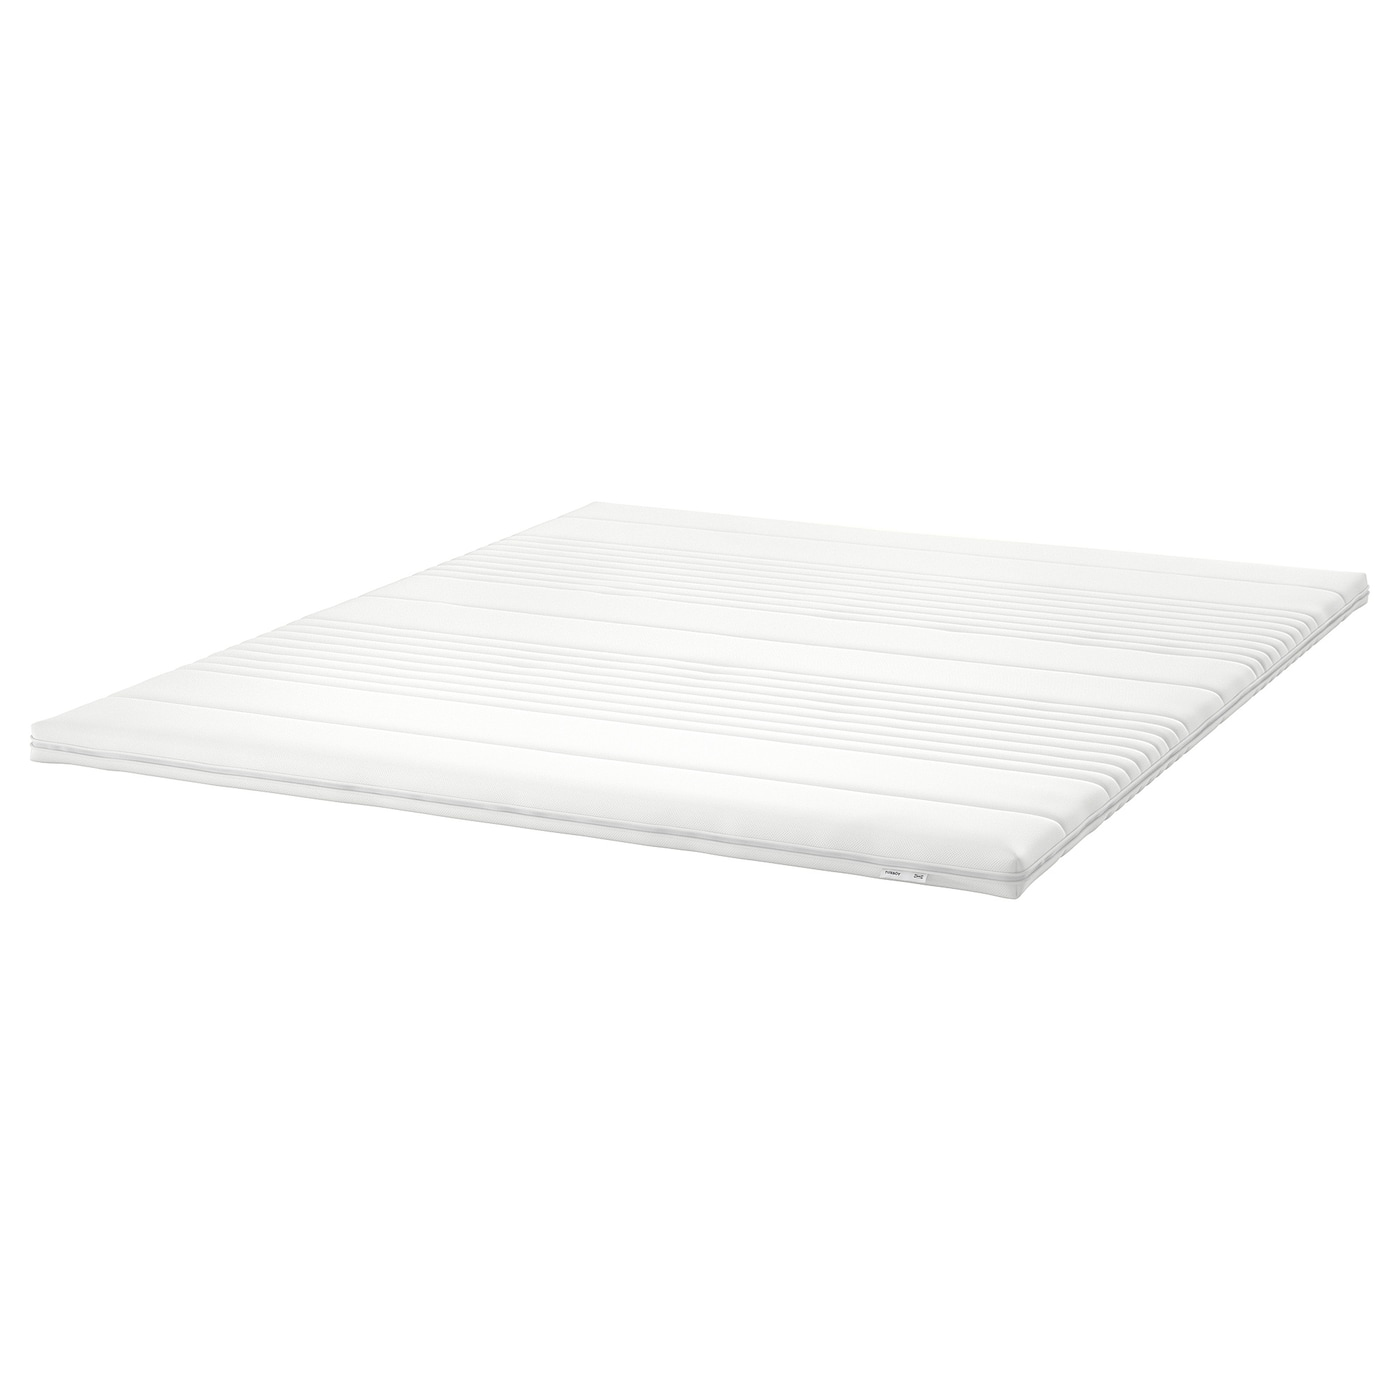 tuss y surmatelas blanc 160 x 200 cm ikea. Black Bedroom Furniture Sets. Home Design Ideas